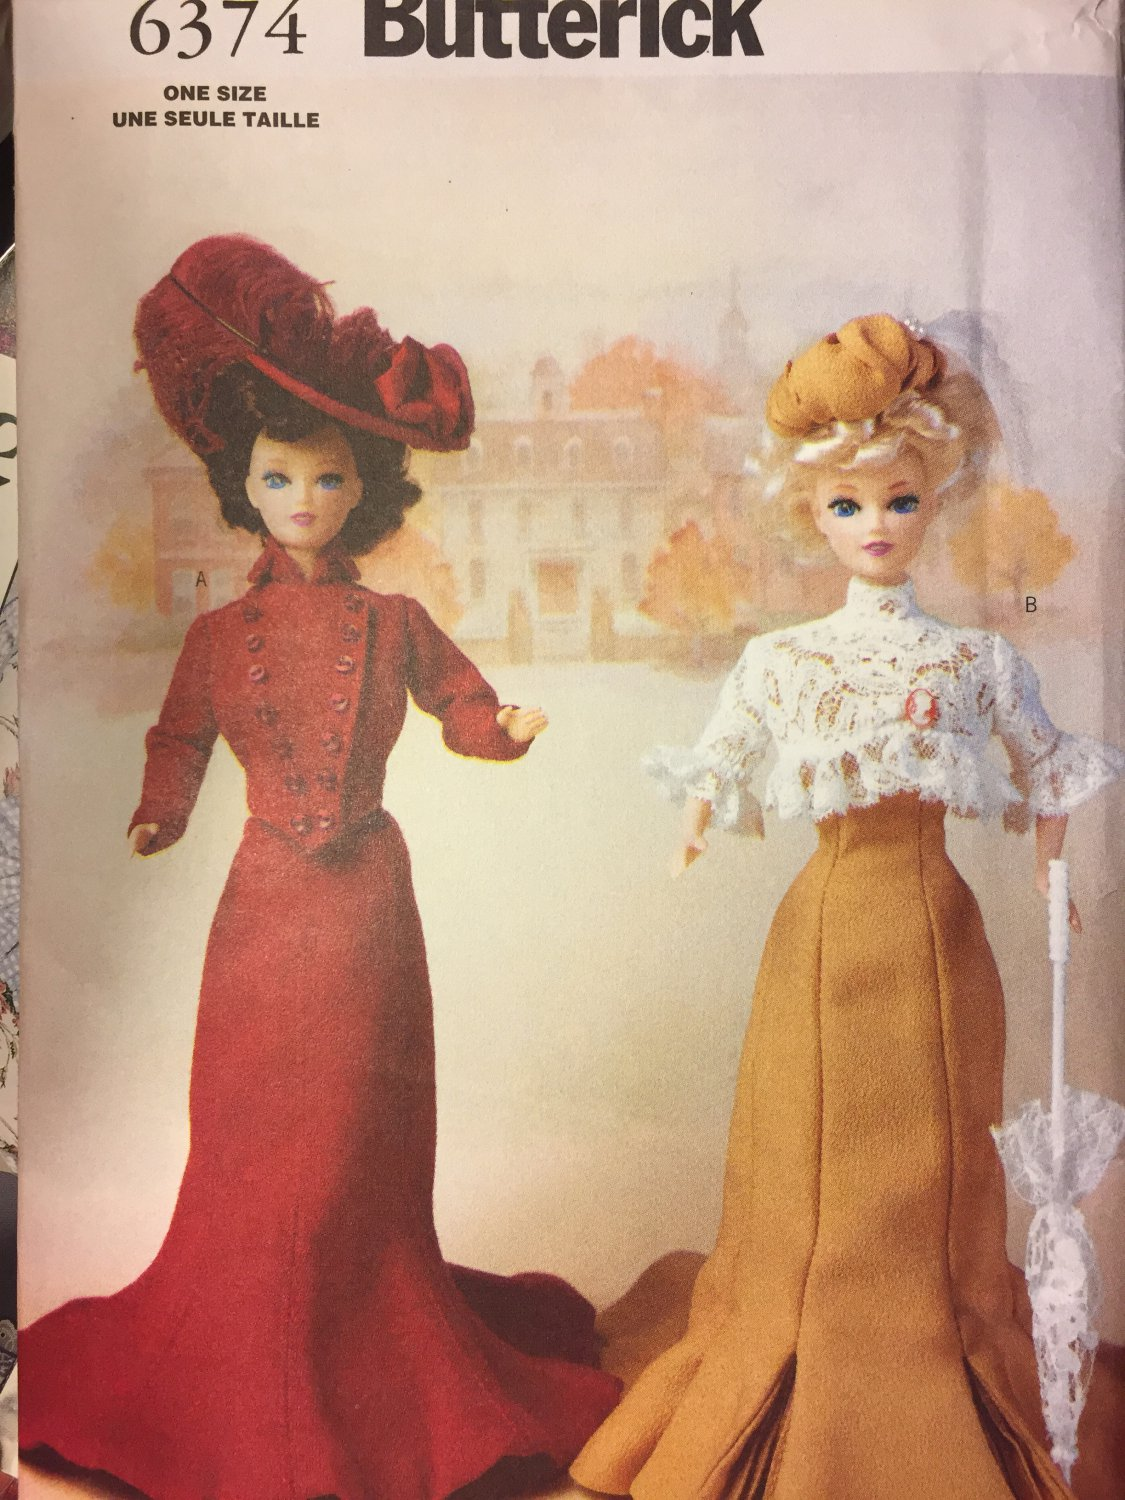 Butterick Sewing Pattern 6374 Delineator Girls Circa 1900 Doll Clothes Pattern 11 1/2 Inch Dolls